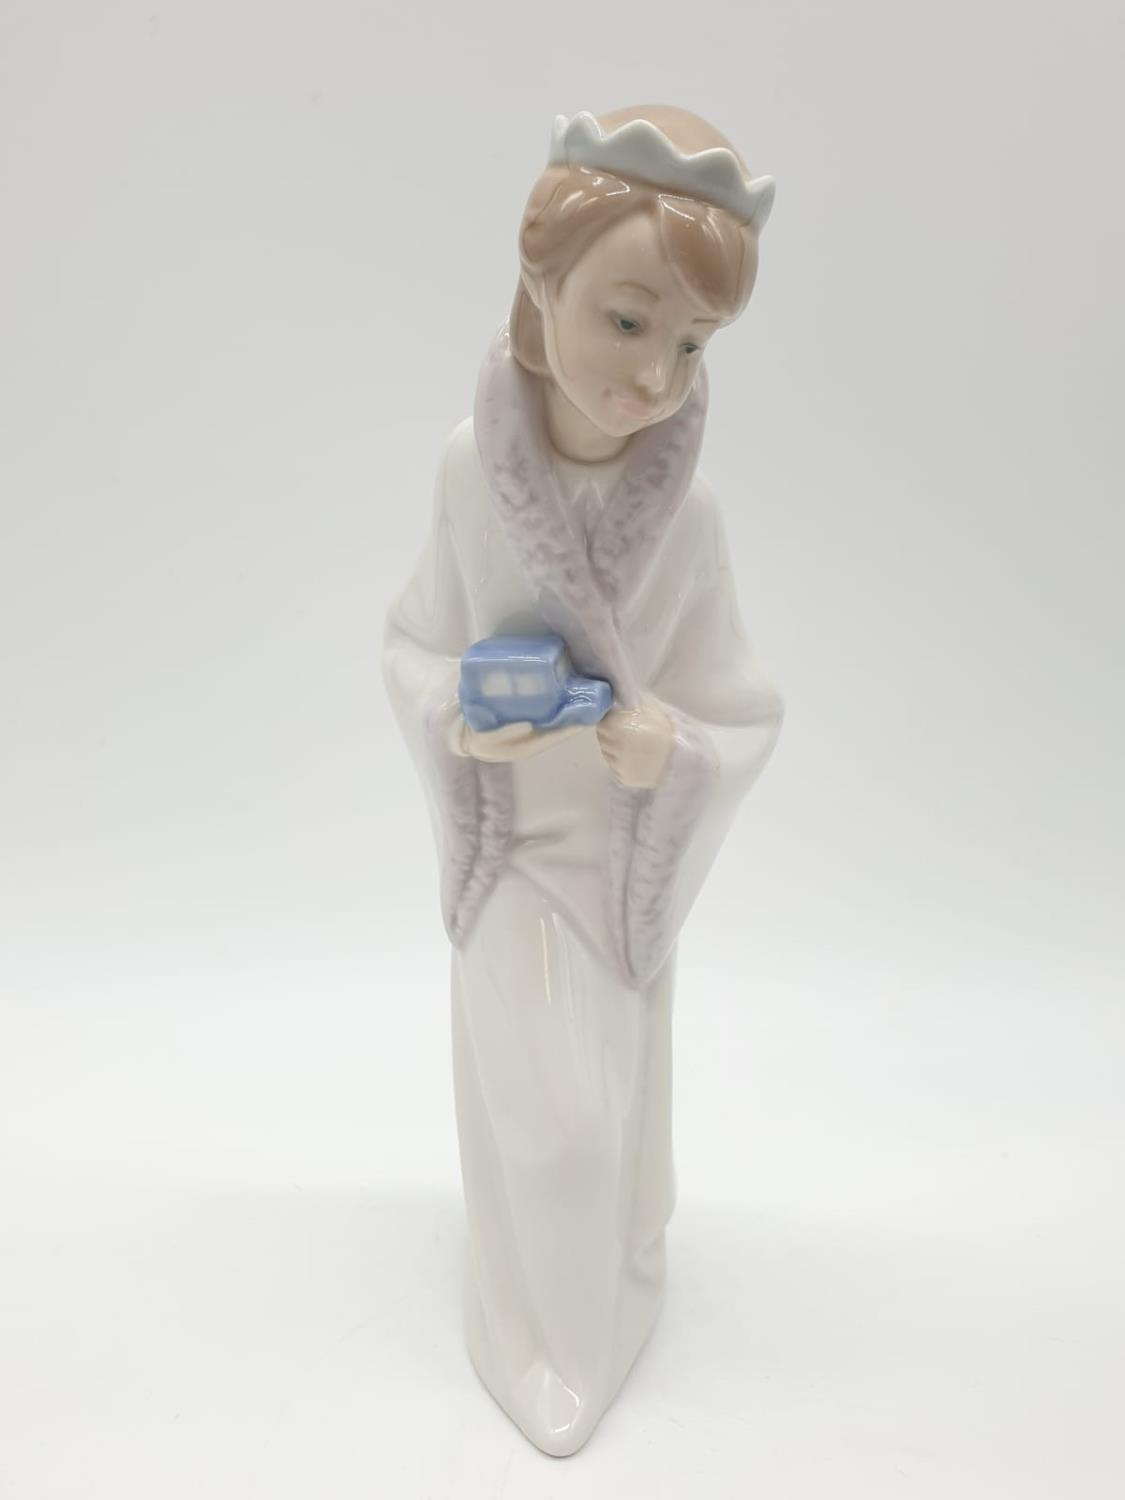 Lladro statue of a young Prince holding a car. 21cm tall.